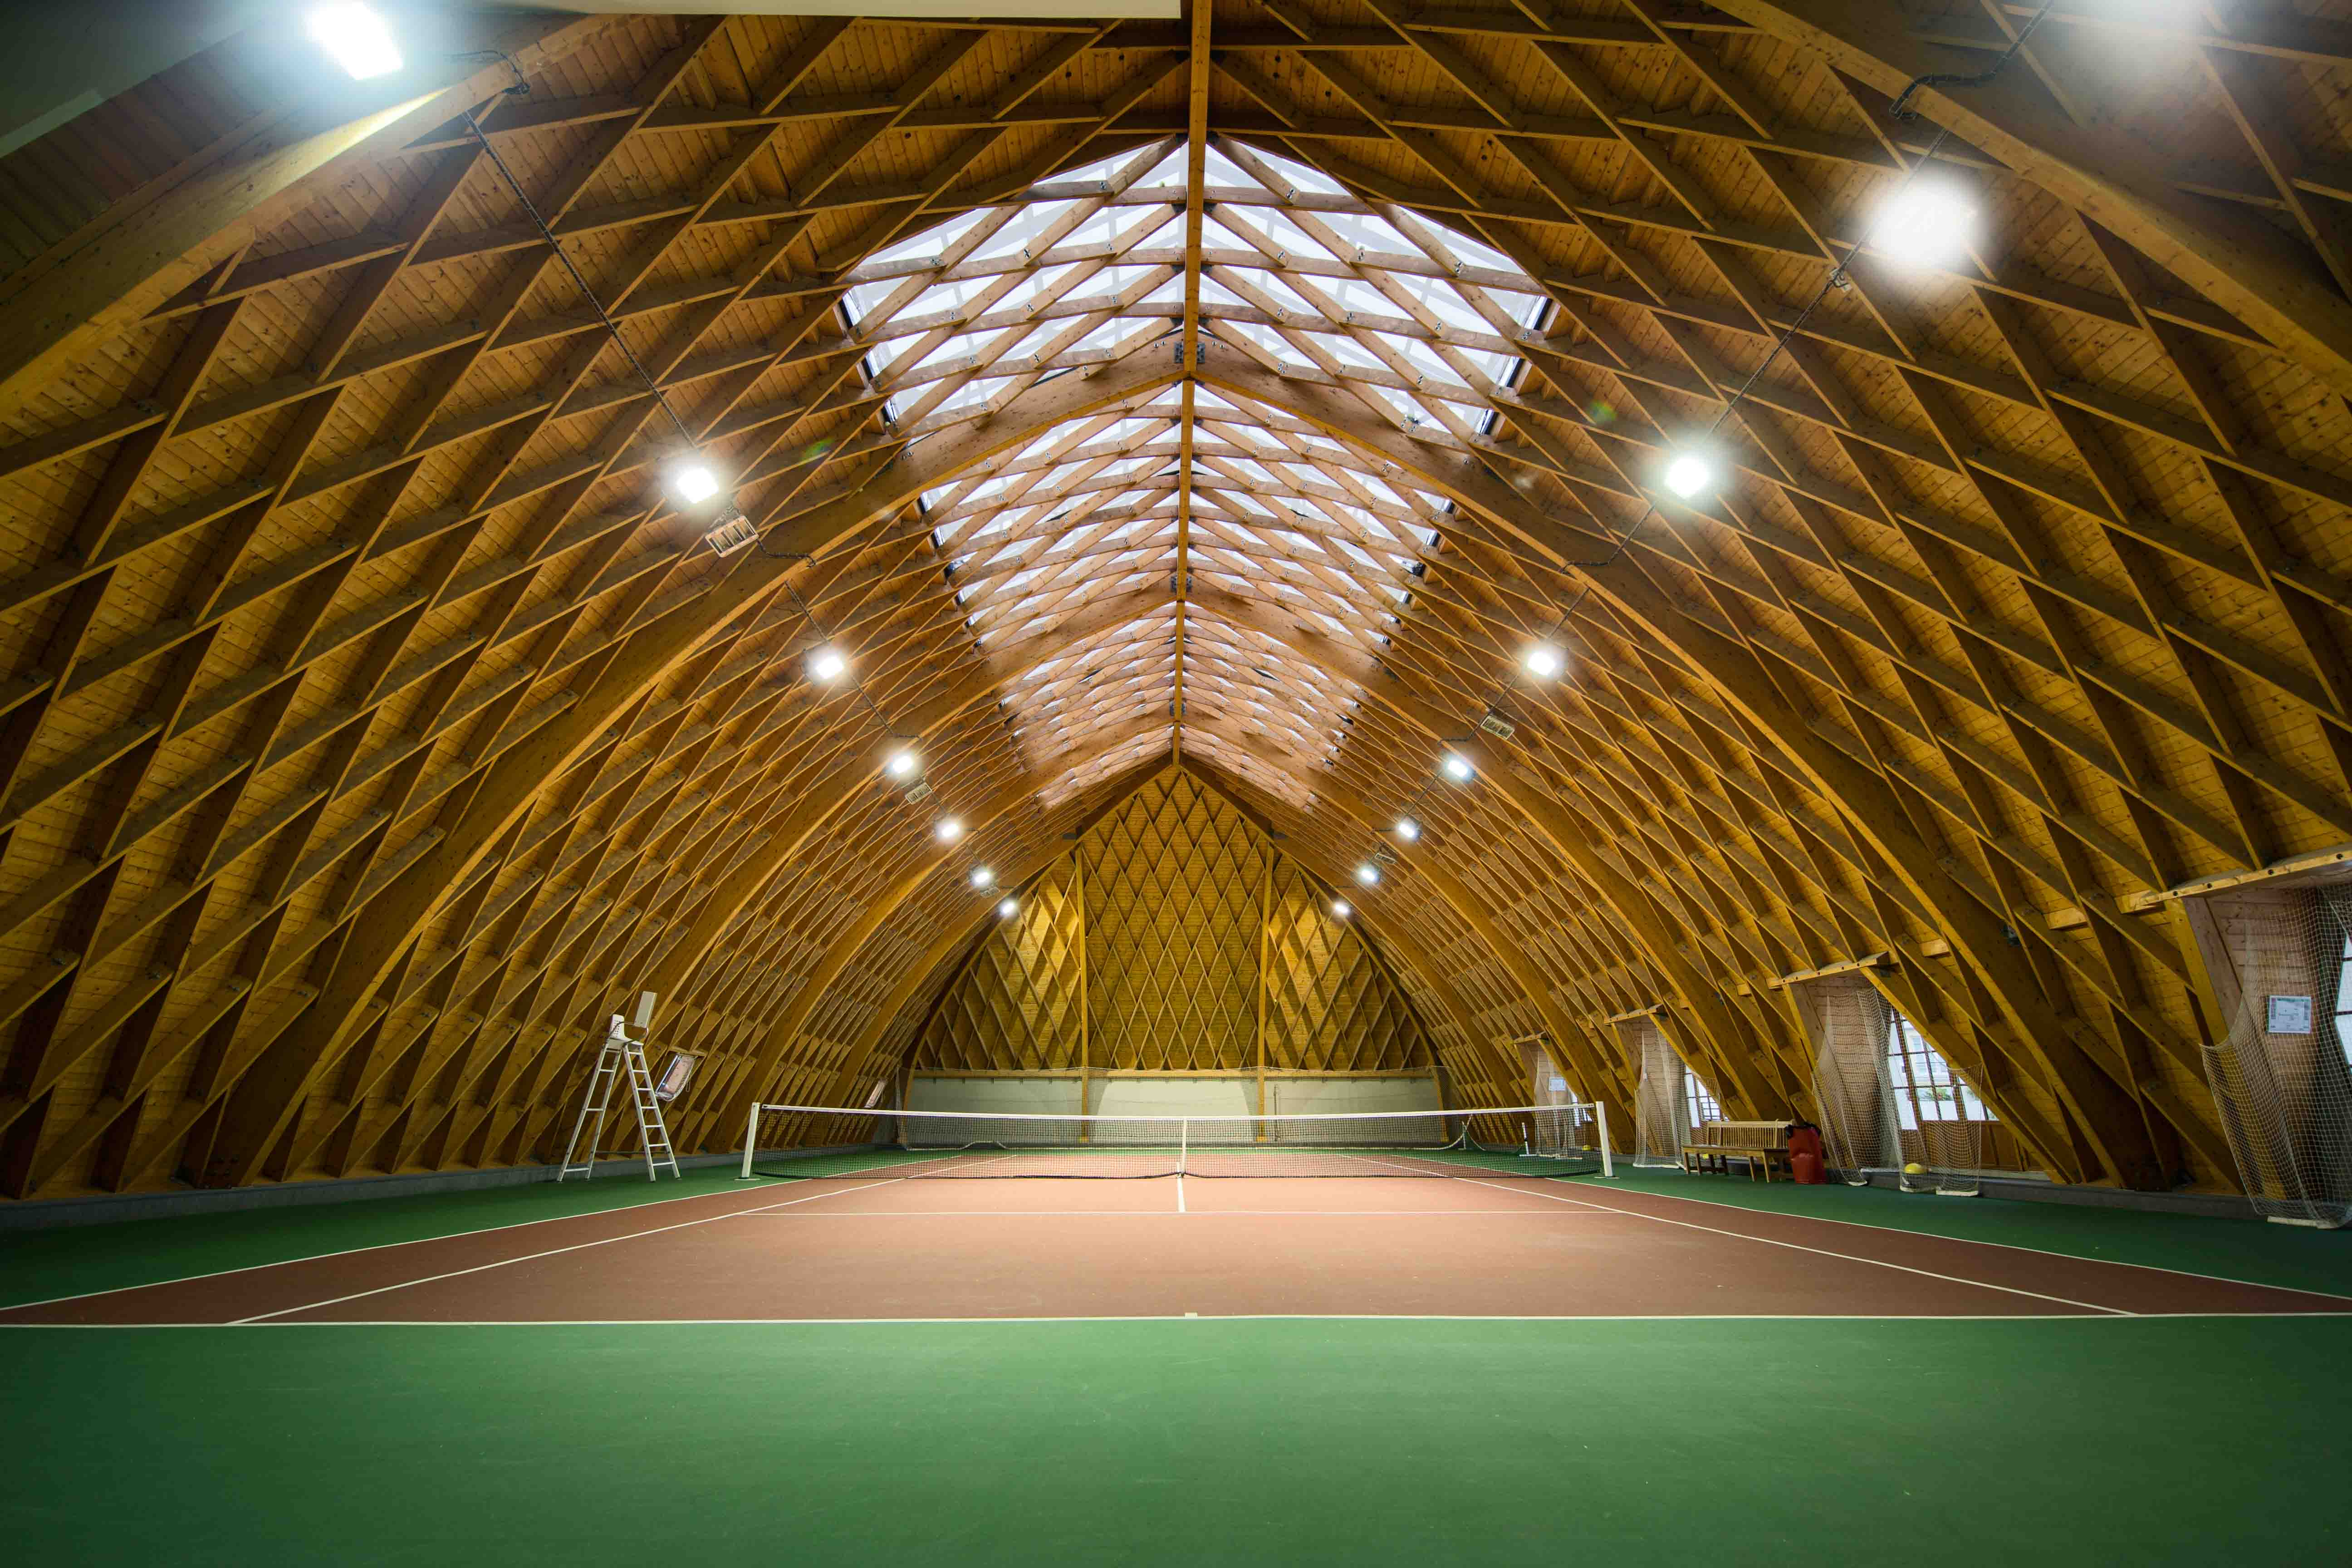 Playing Like A Pro The World S Coolest Tennis Courts Amuse